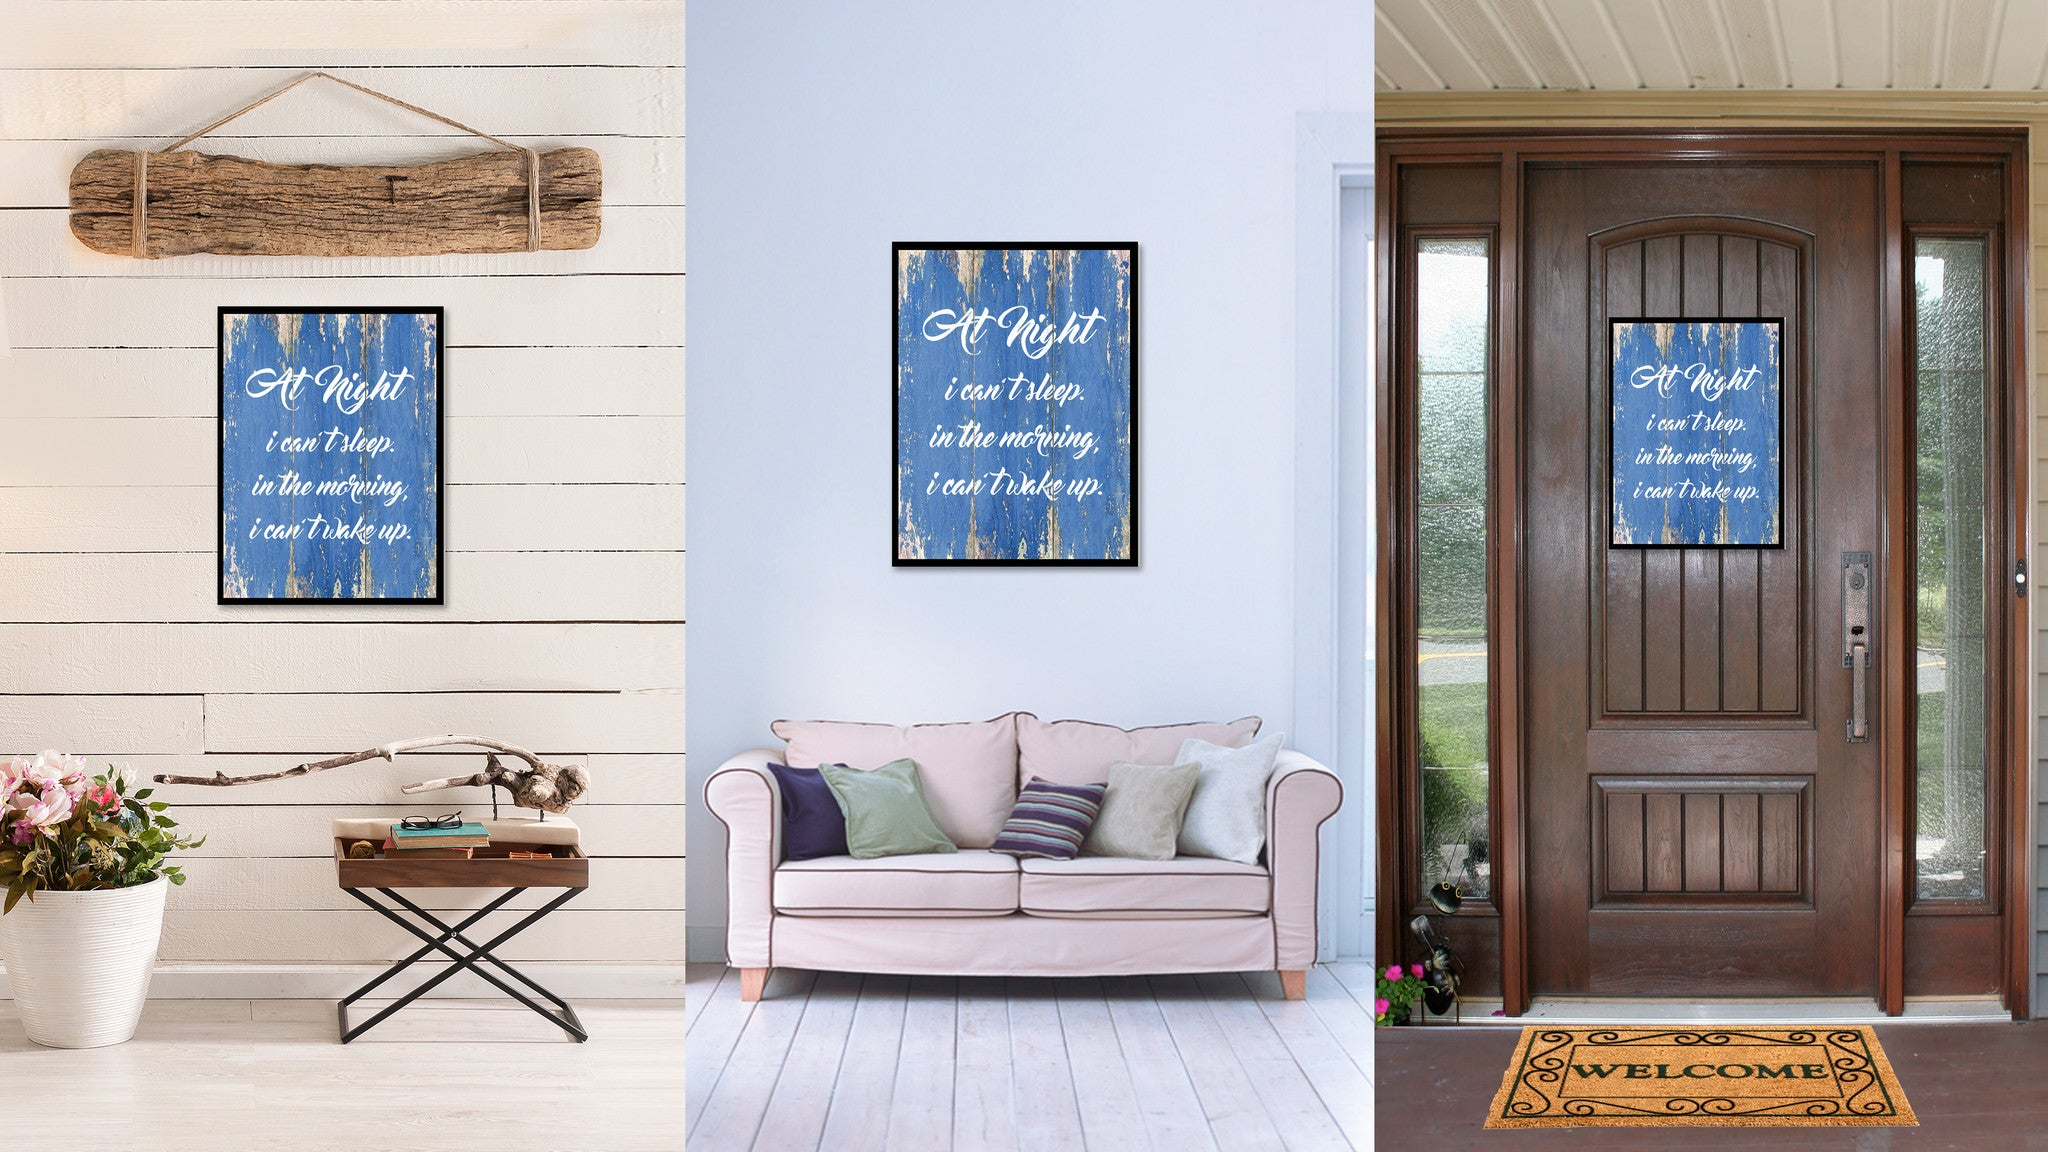 At Night I can't Sleep In The Morning  Quote Saying Gift Ideas Home Décor Wall Art